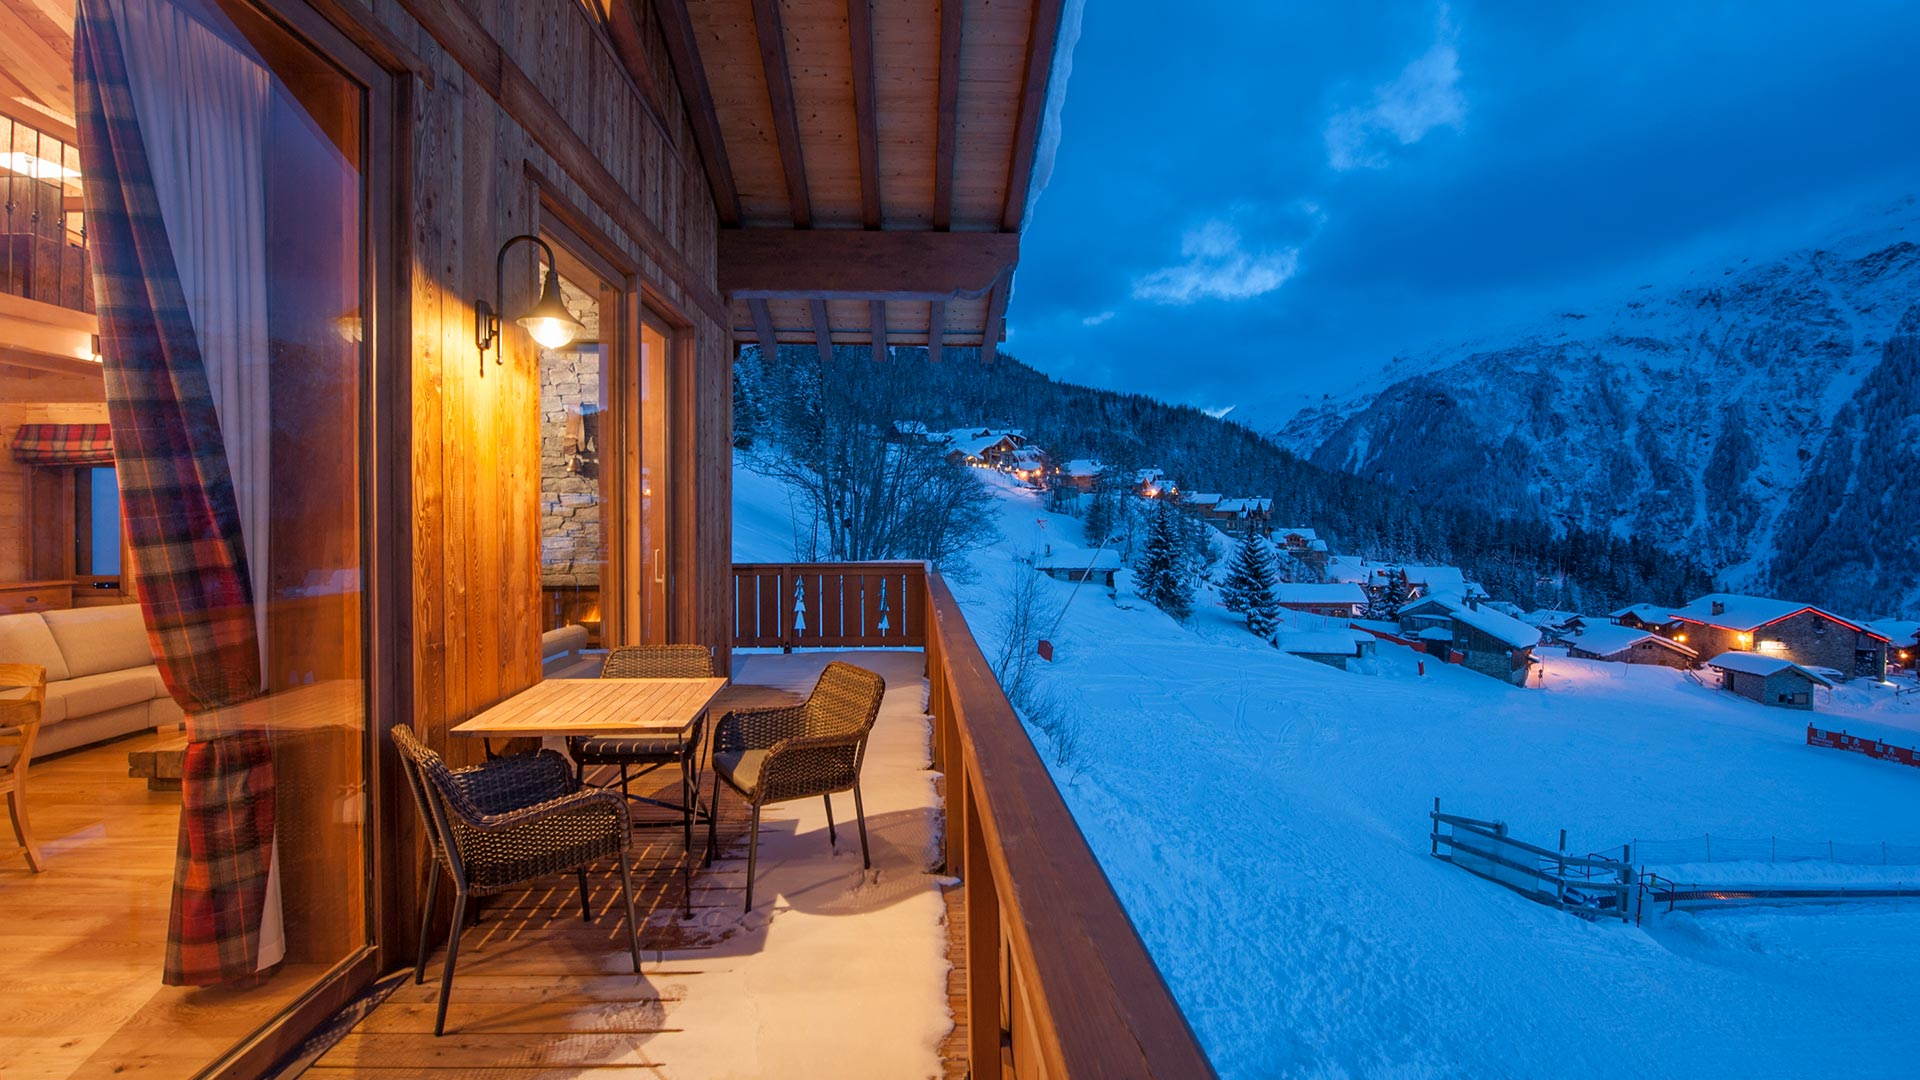 The Rayas Chalet balcony overlooking Sainte Foy.